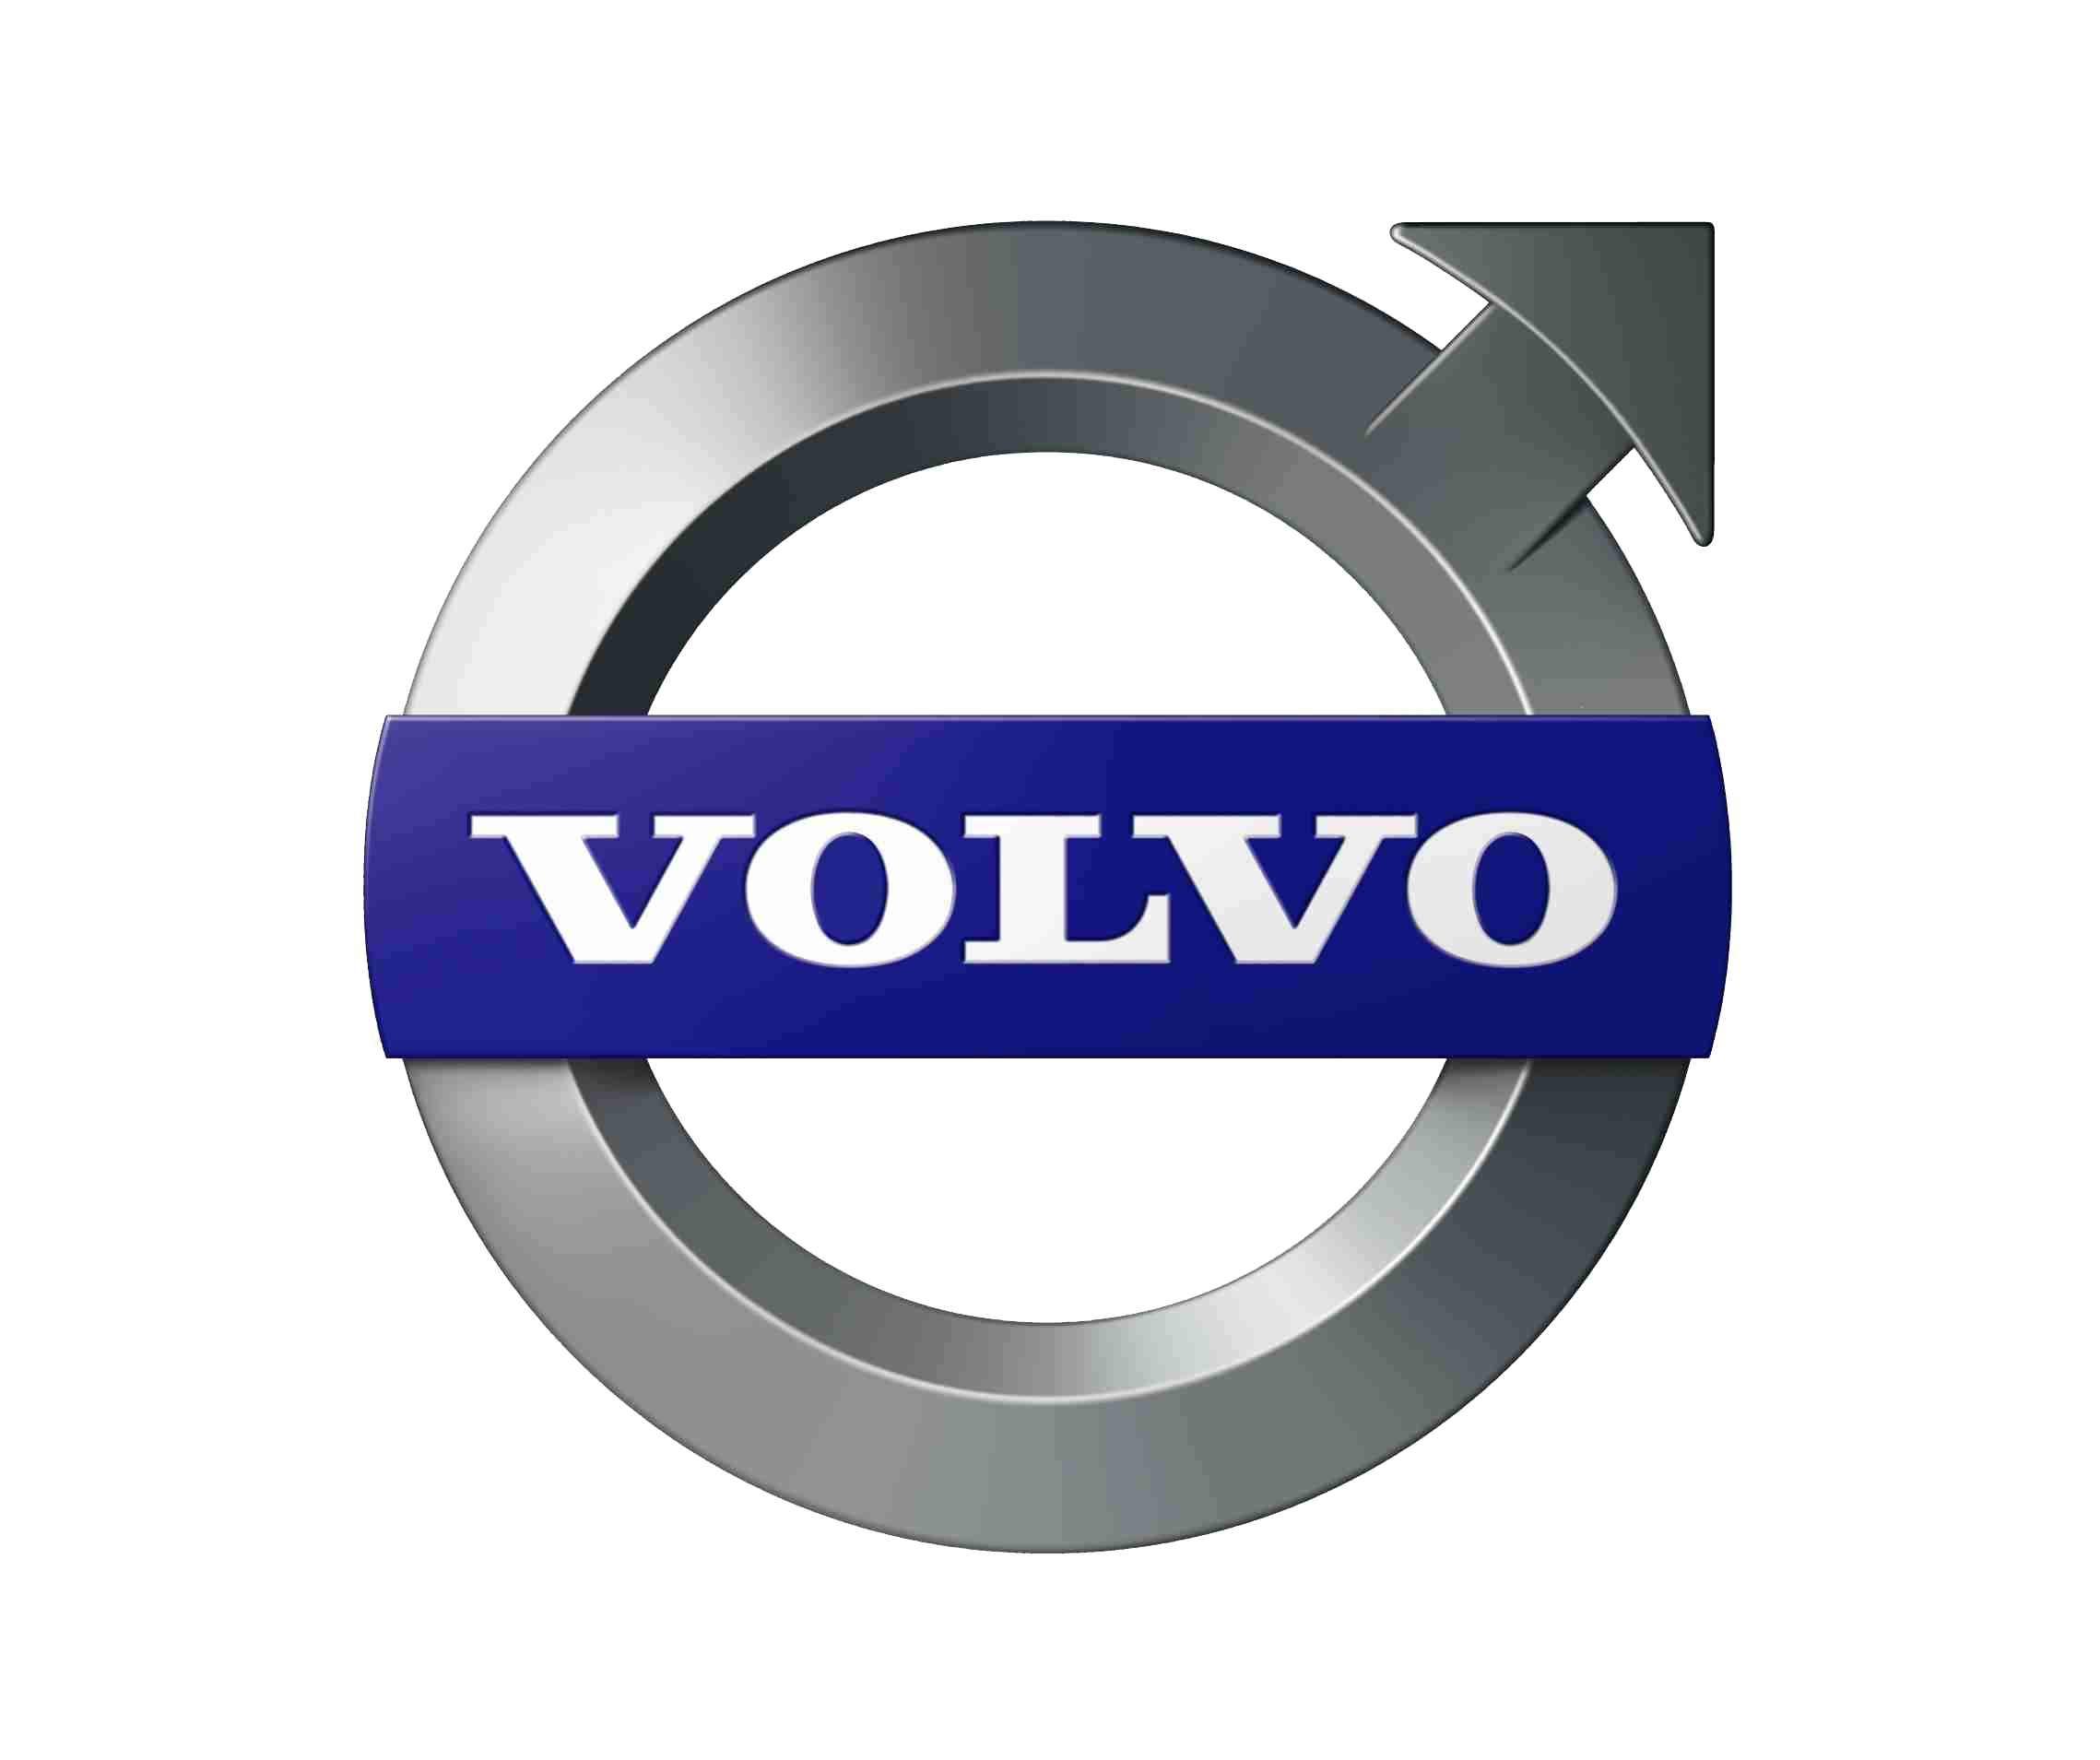 Volvo - Car and truck manufacturer